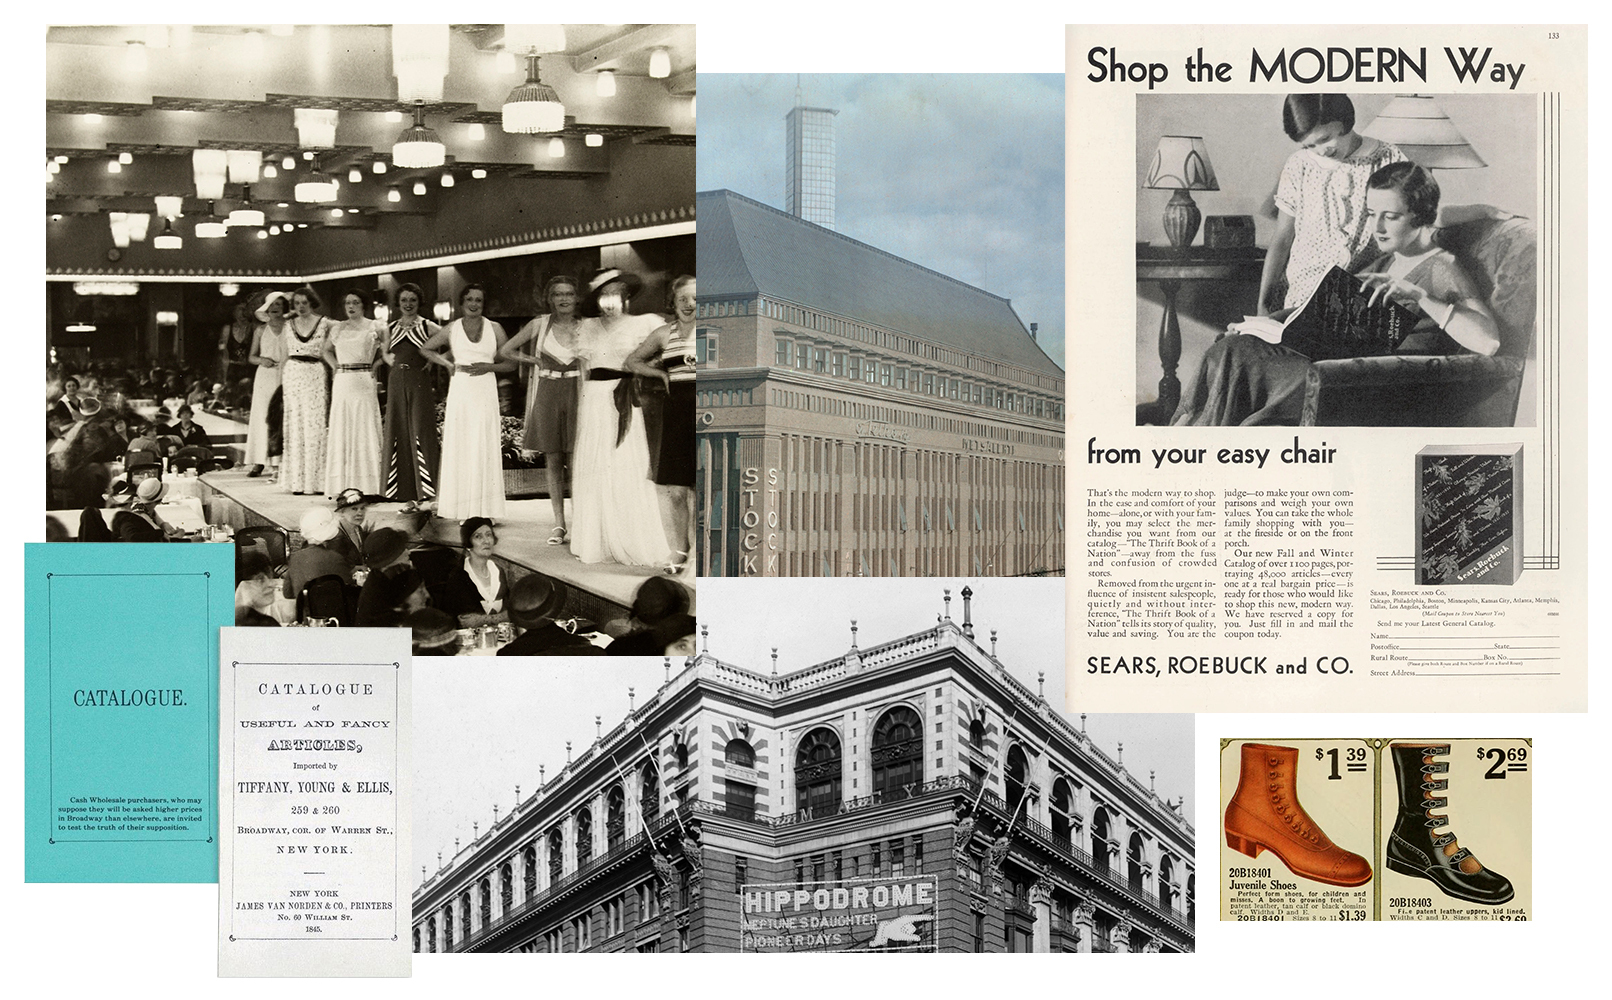 Shoppingthroughtheages_1